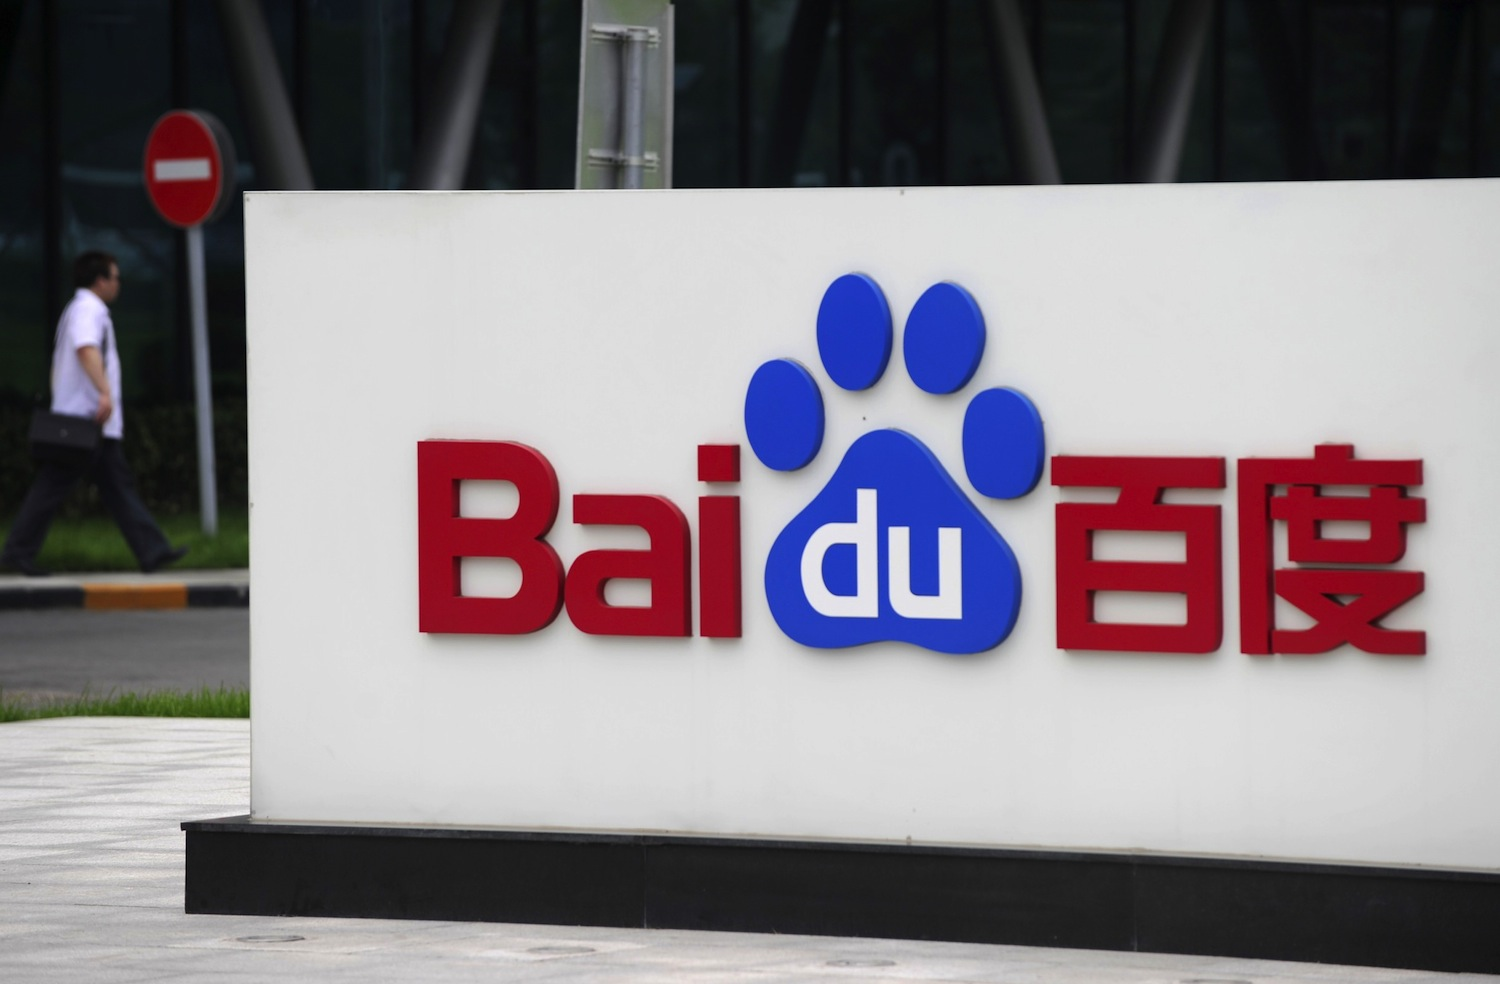 Baidu Apps Feature Significant Security Flaw